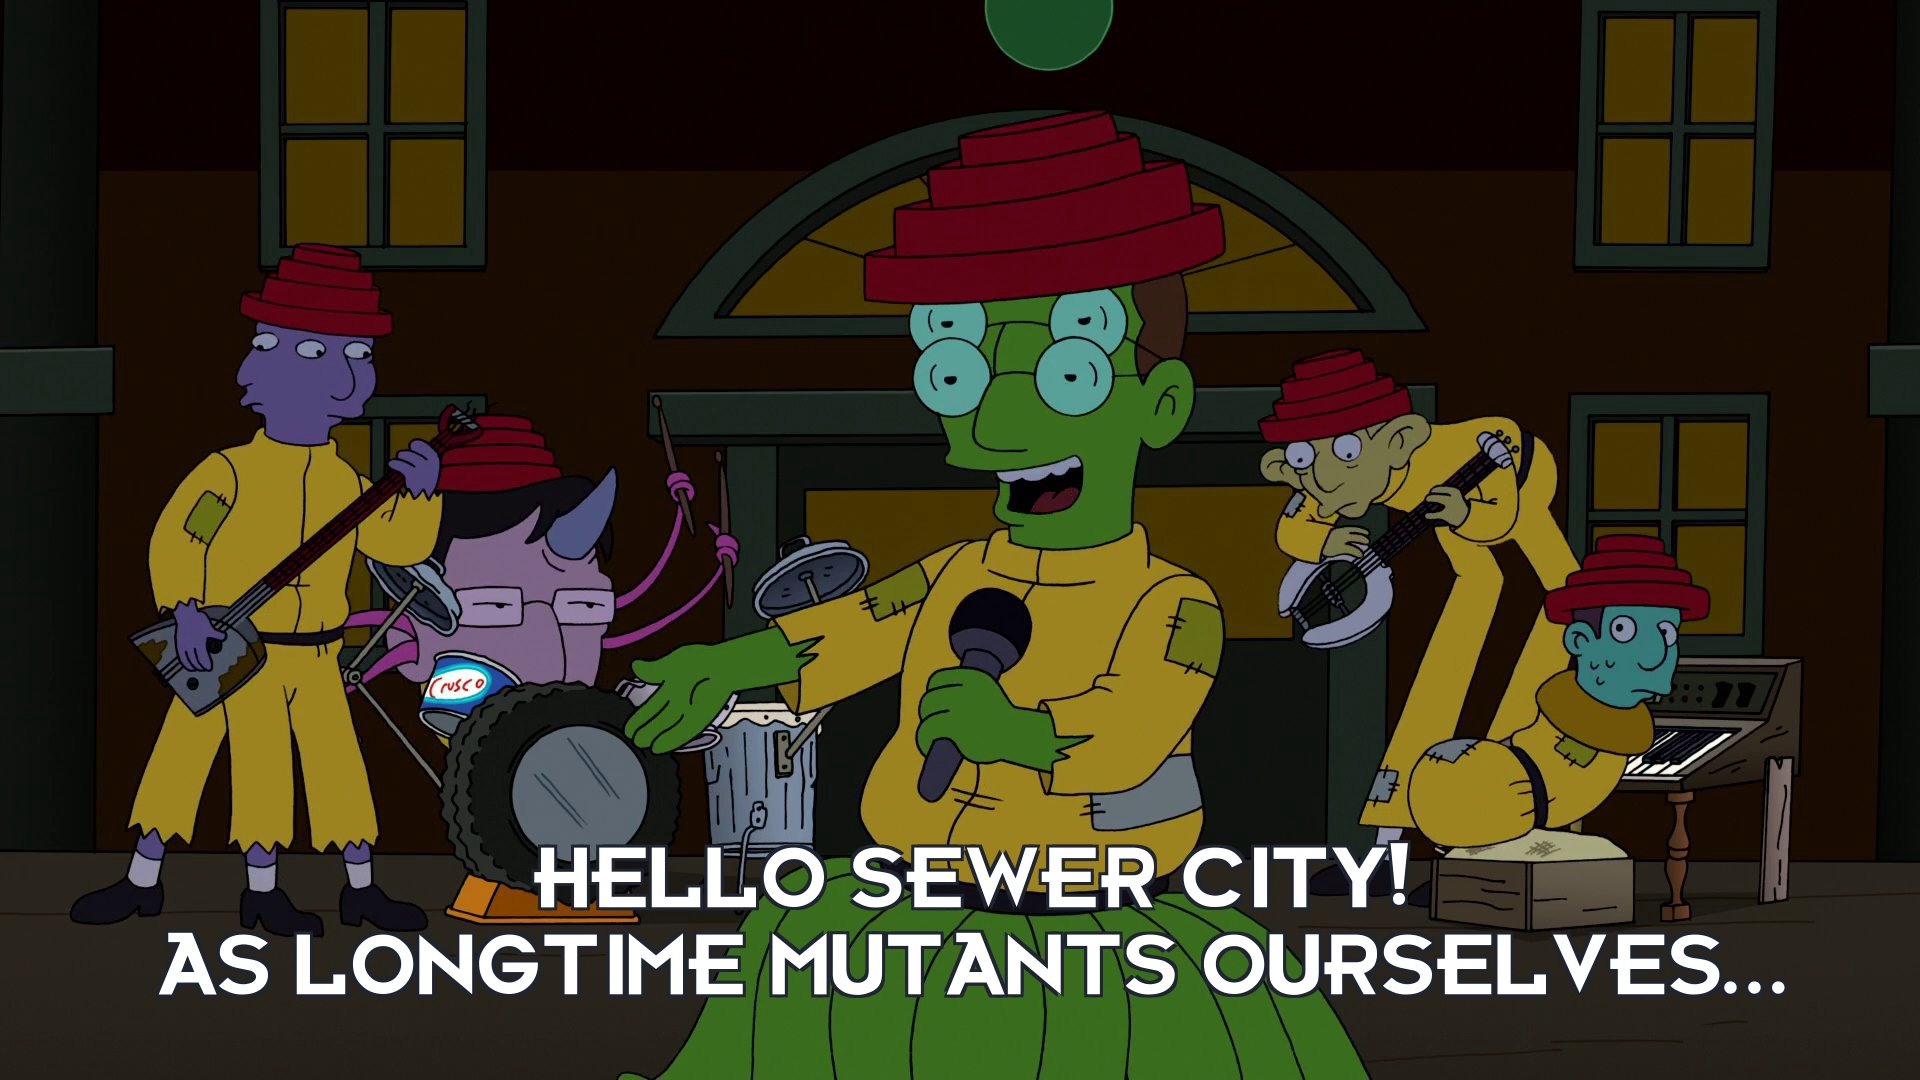 Mutated Mark Mothersbaugh: Hello Sewer City! As longtime mutants ourselves...